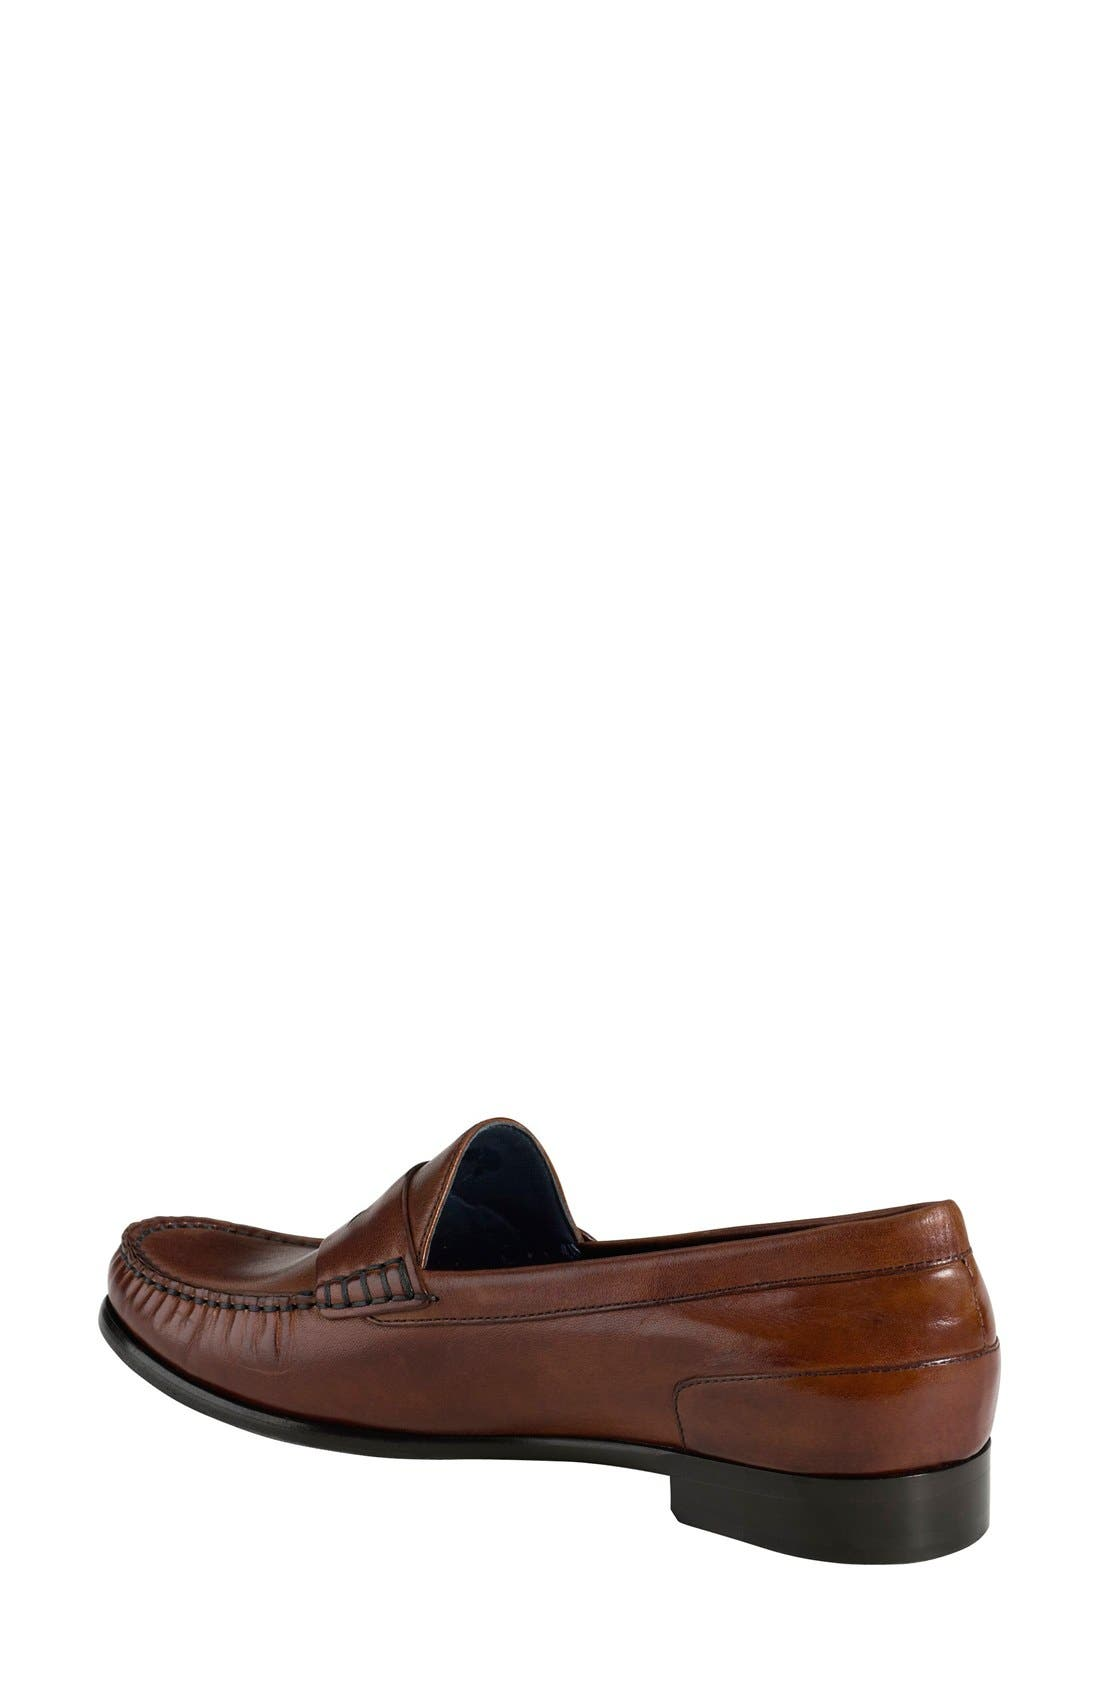 'Laurel' Moc Loafer,                             Alternate thumbnail 2, color,                             200